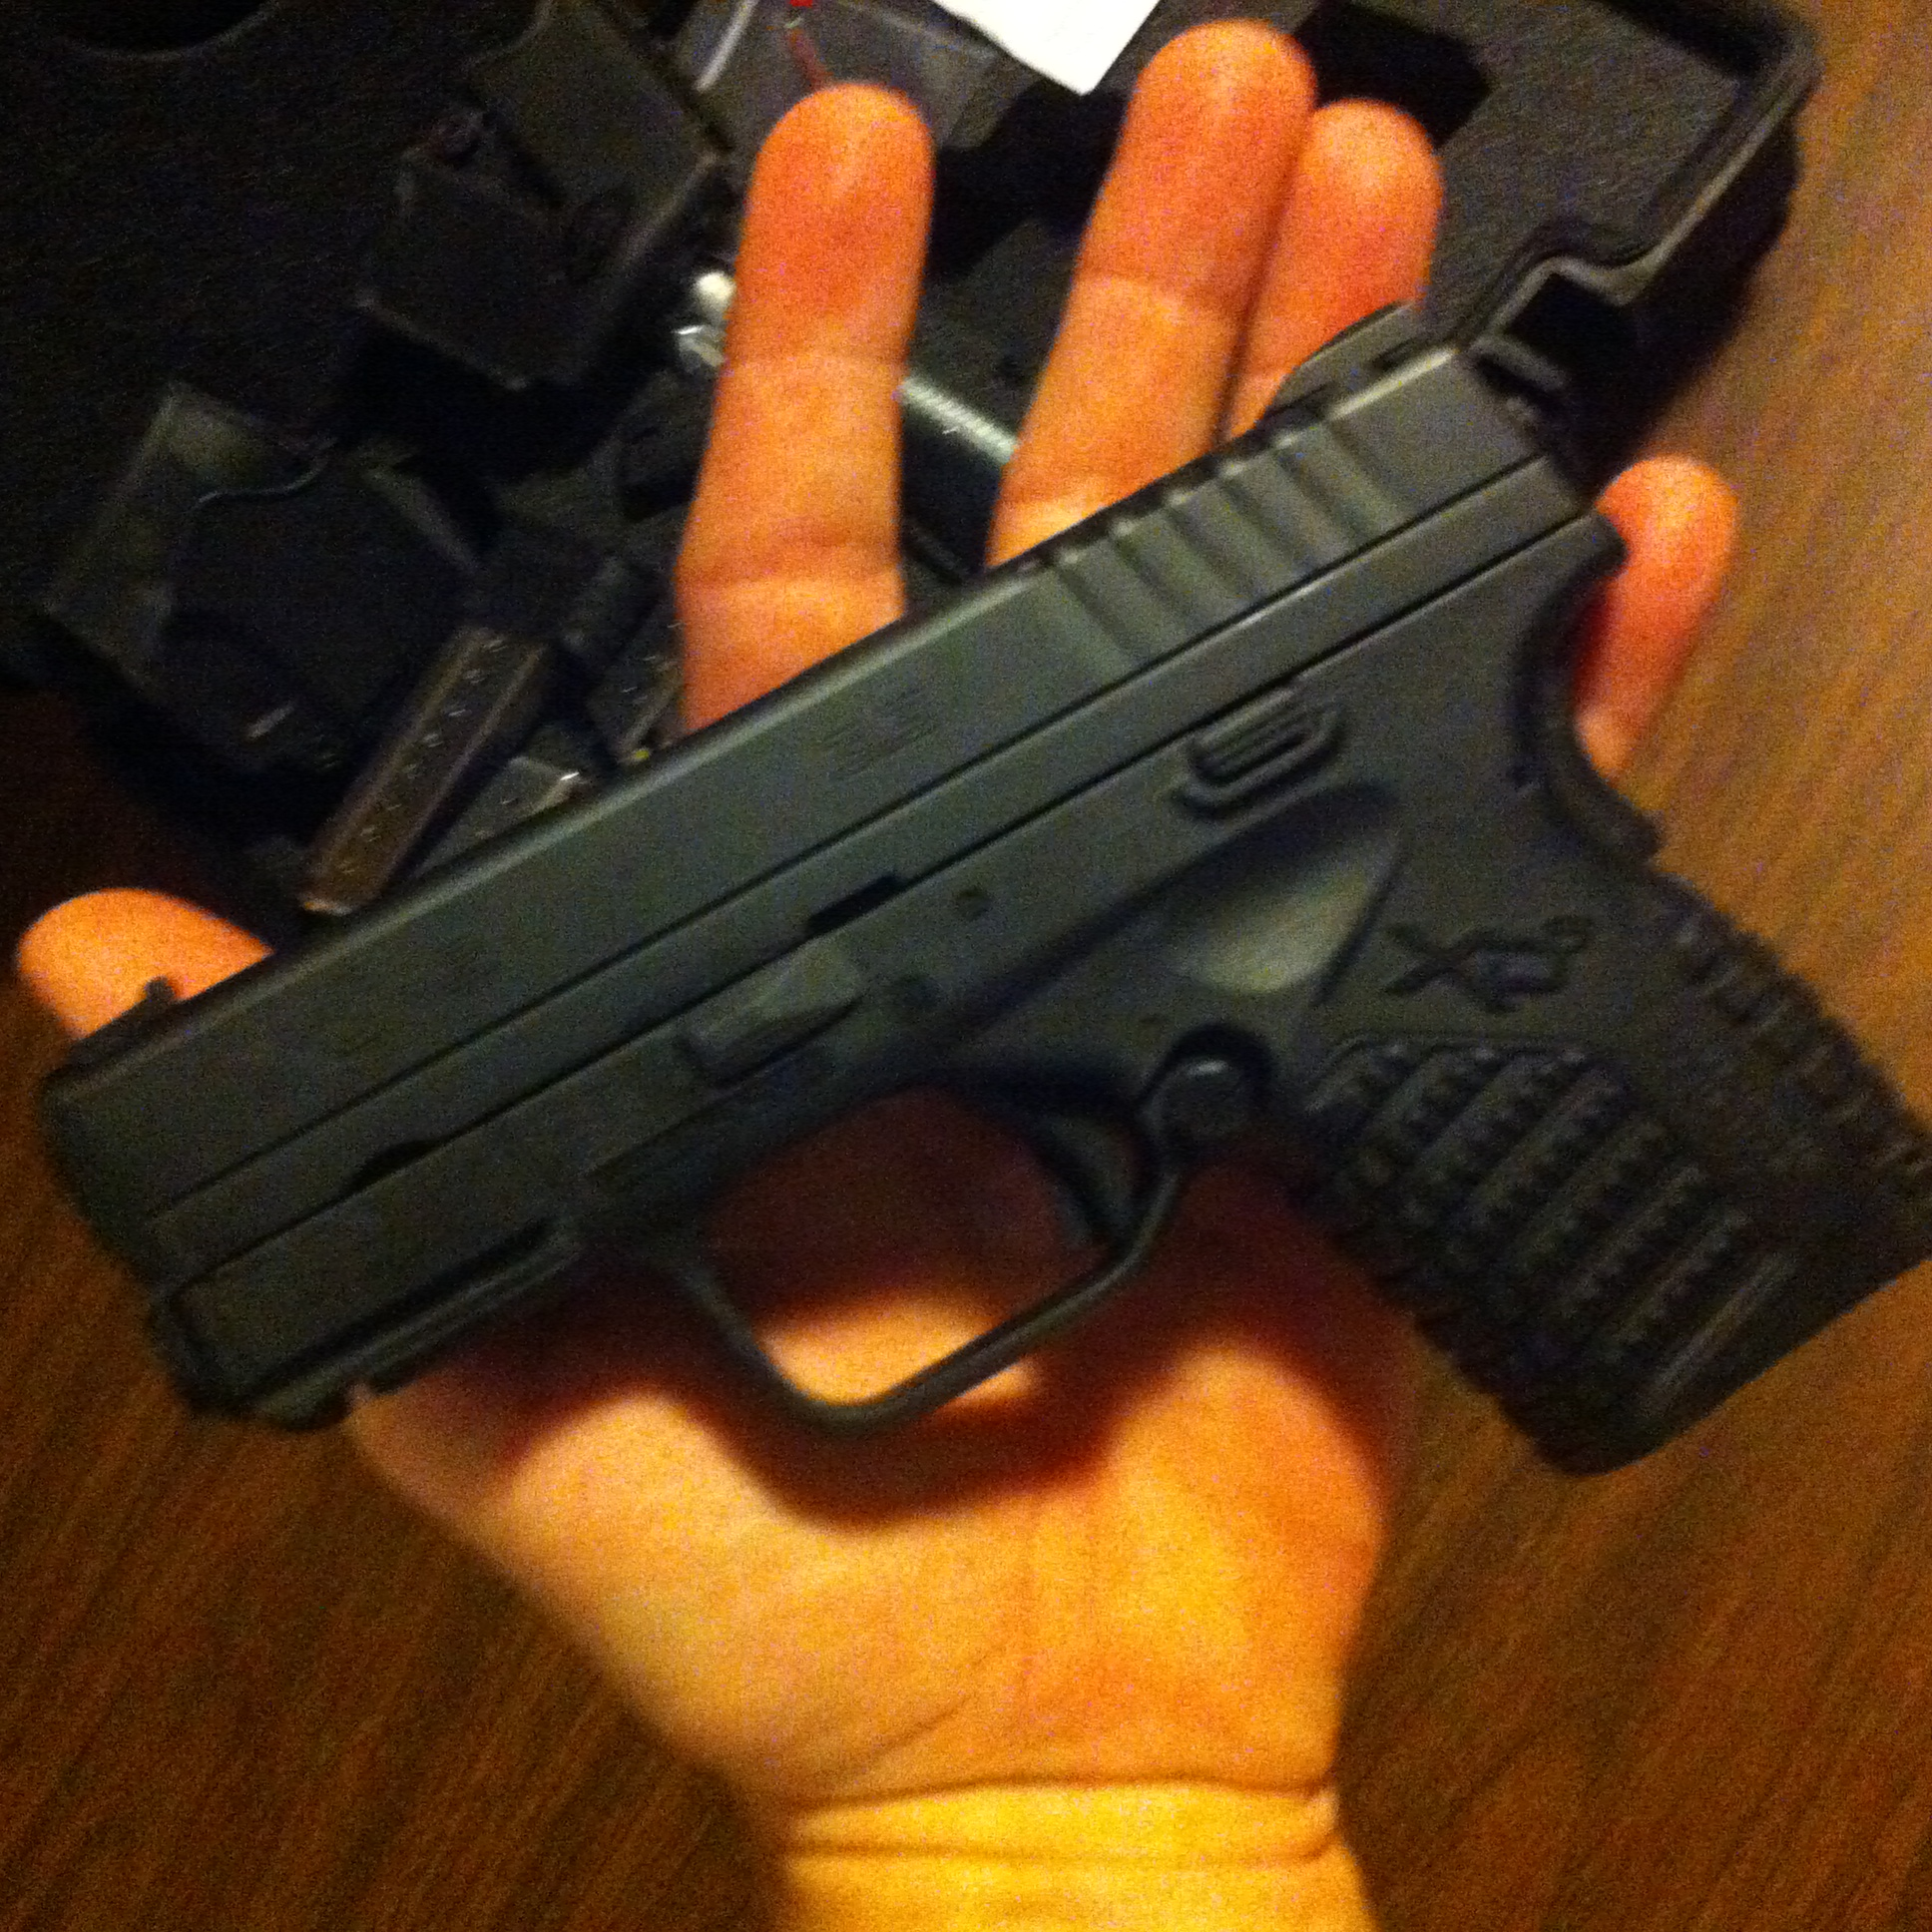 trade xds 9mm for 45-img_1266.jpg